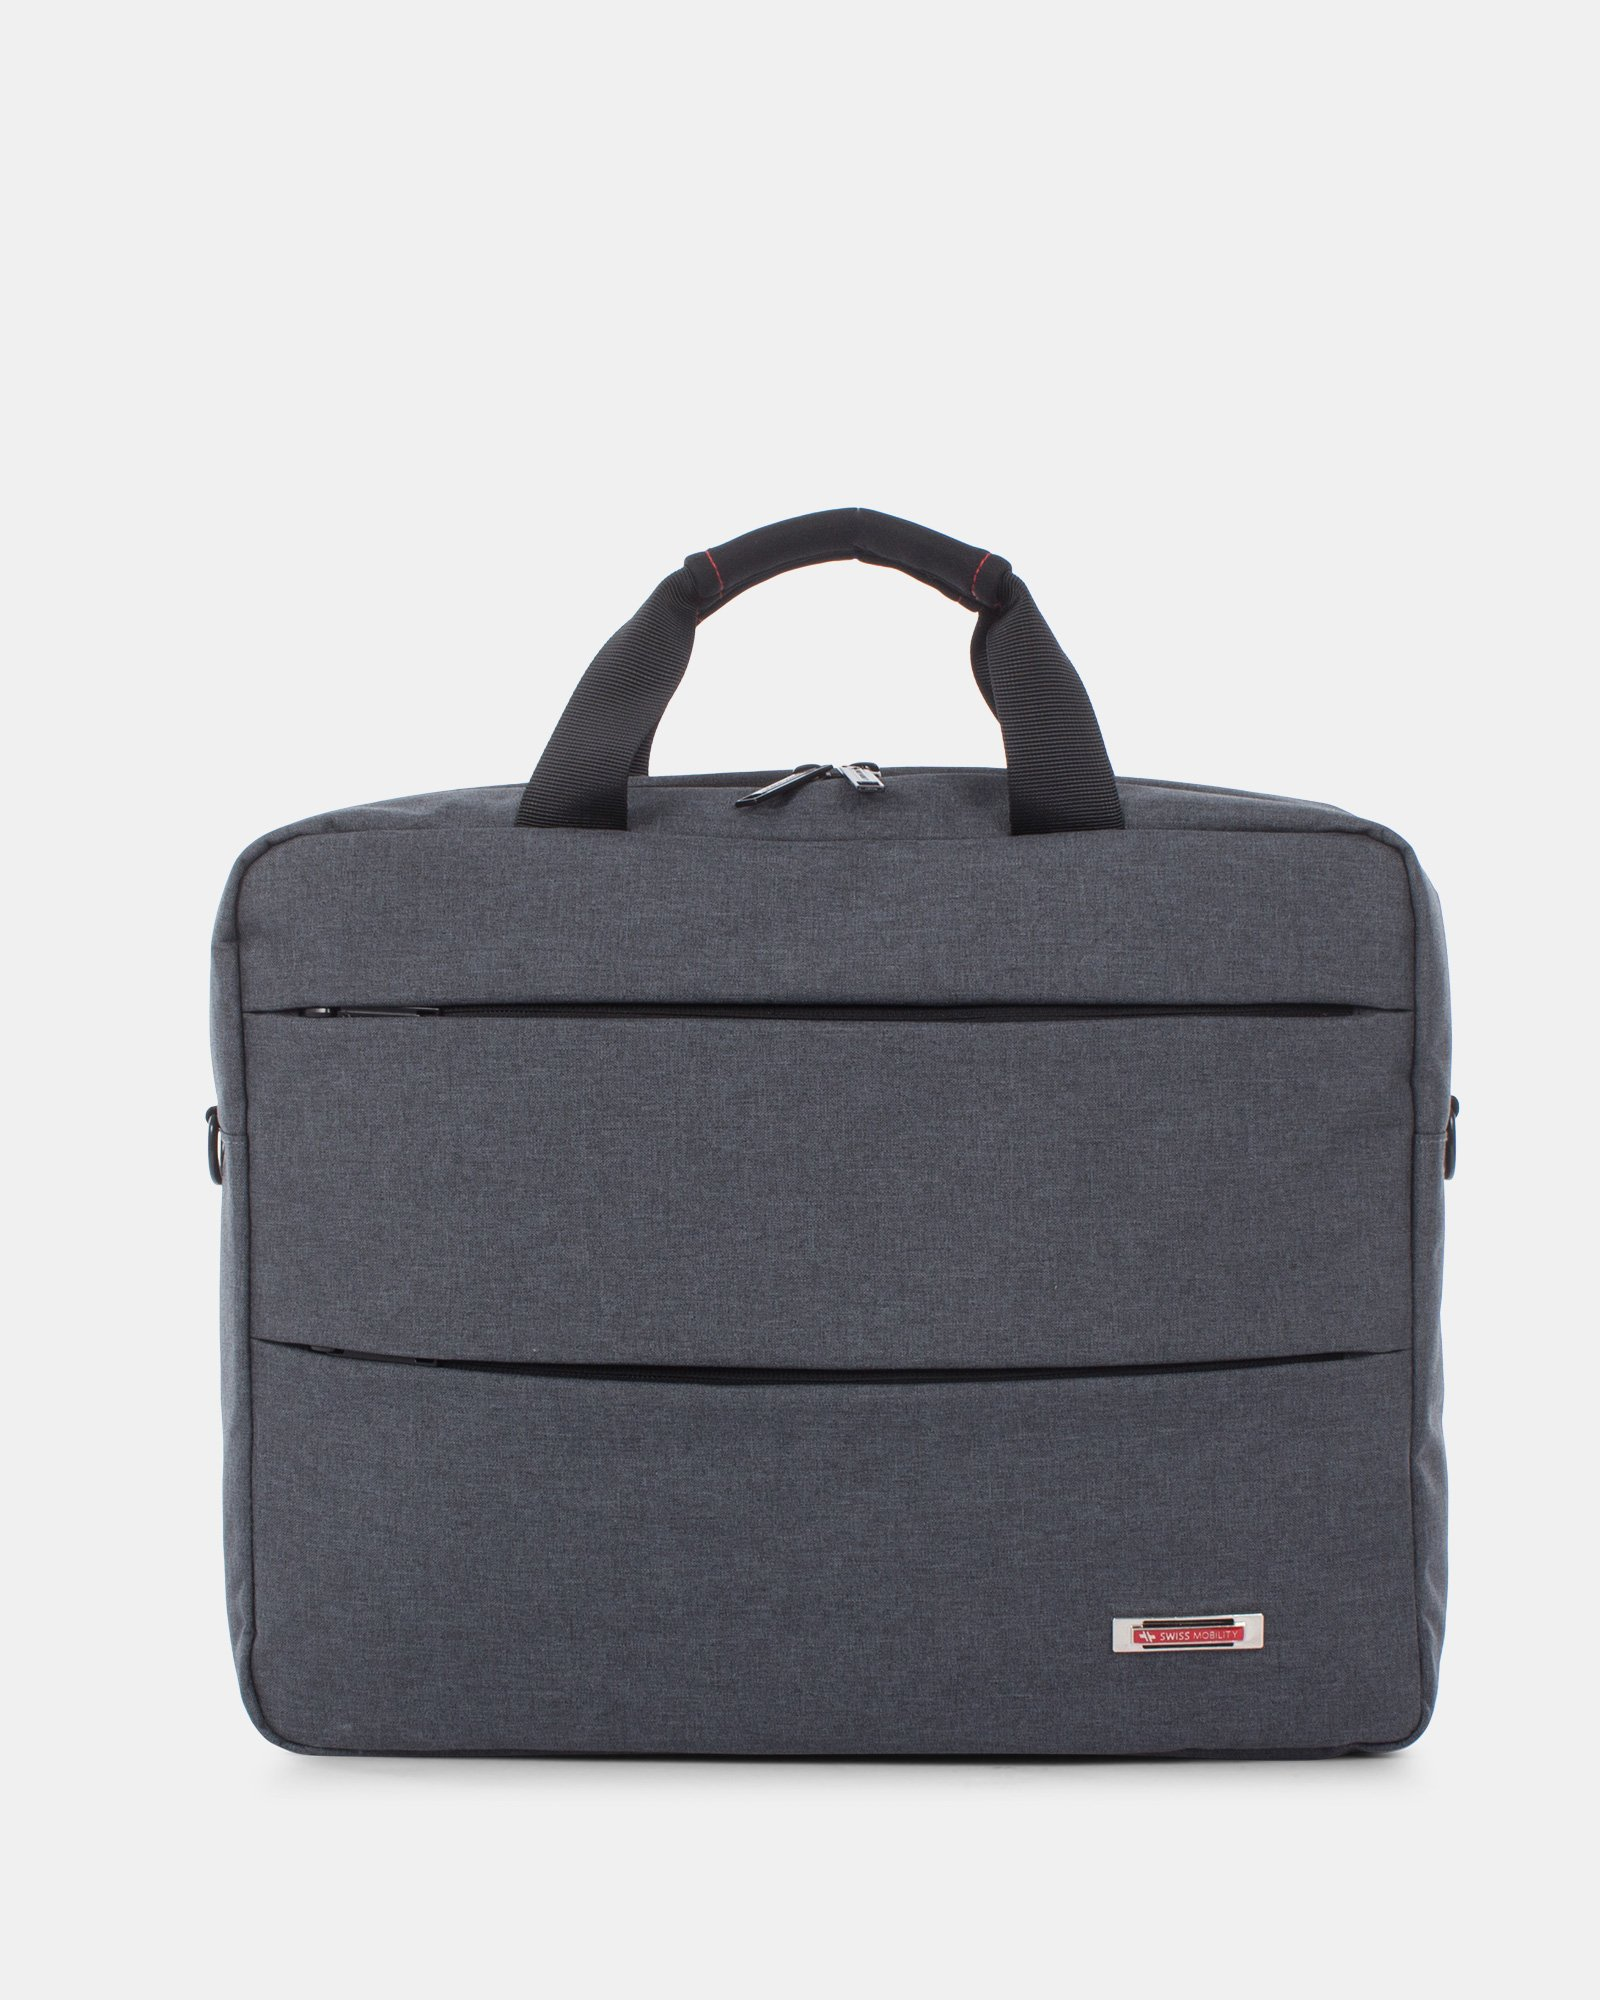 """Elevate – Soft Briefcase for 15.6"""" Laptop with Adjustable and removable shoulder strap - Grey    - Swiss Mobility - Zoom"""